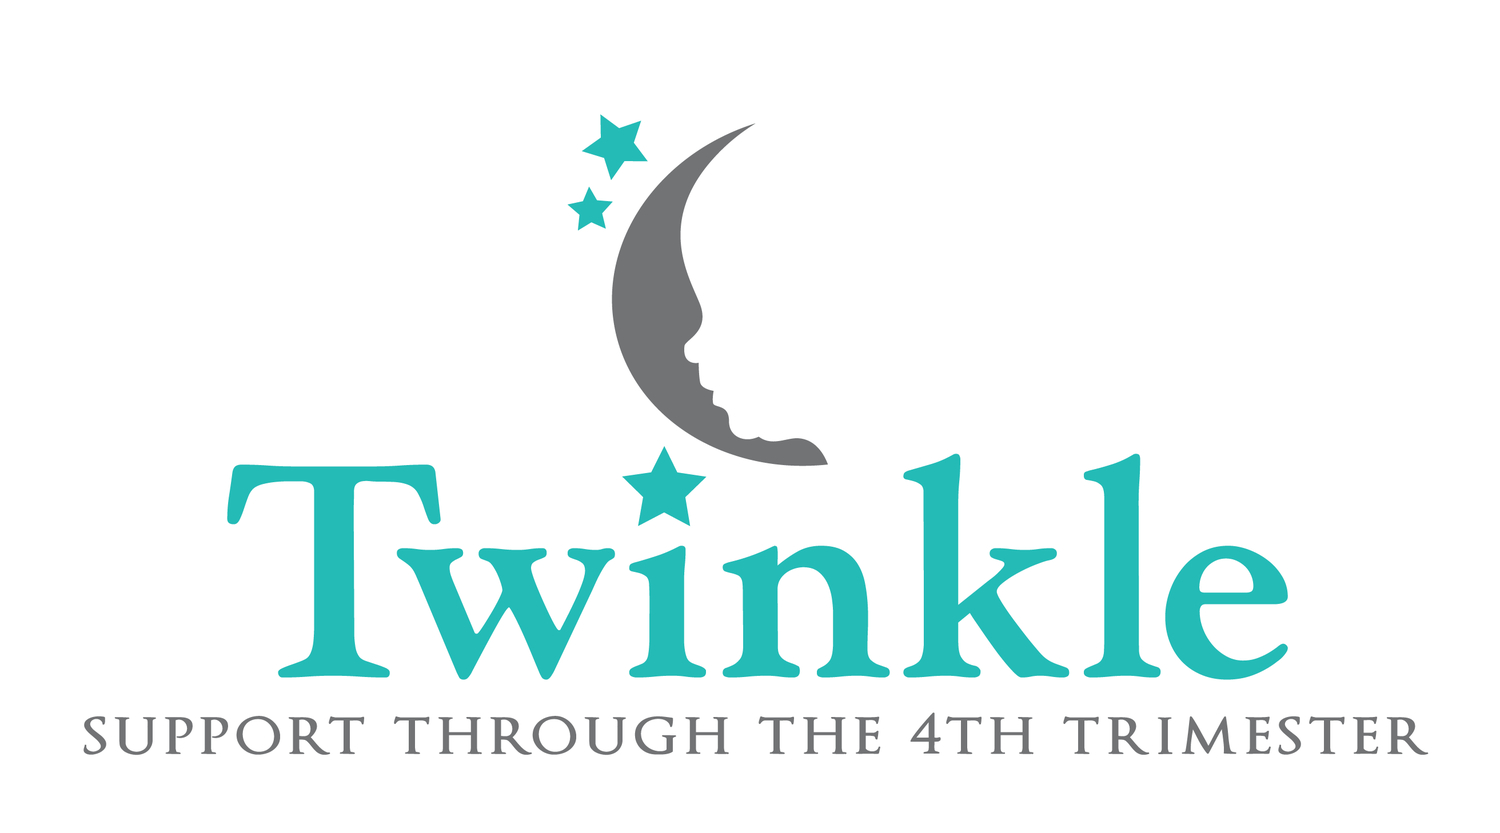 Twinkle Support